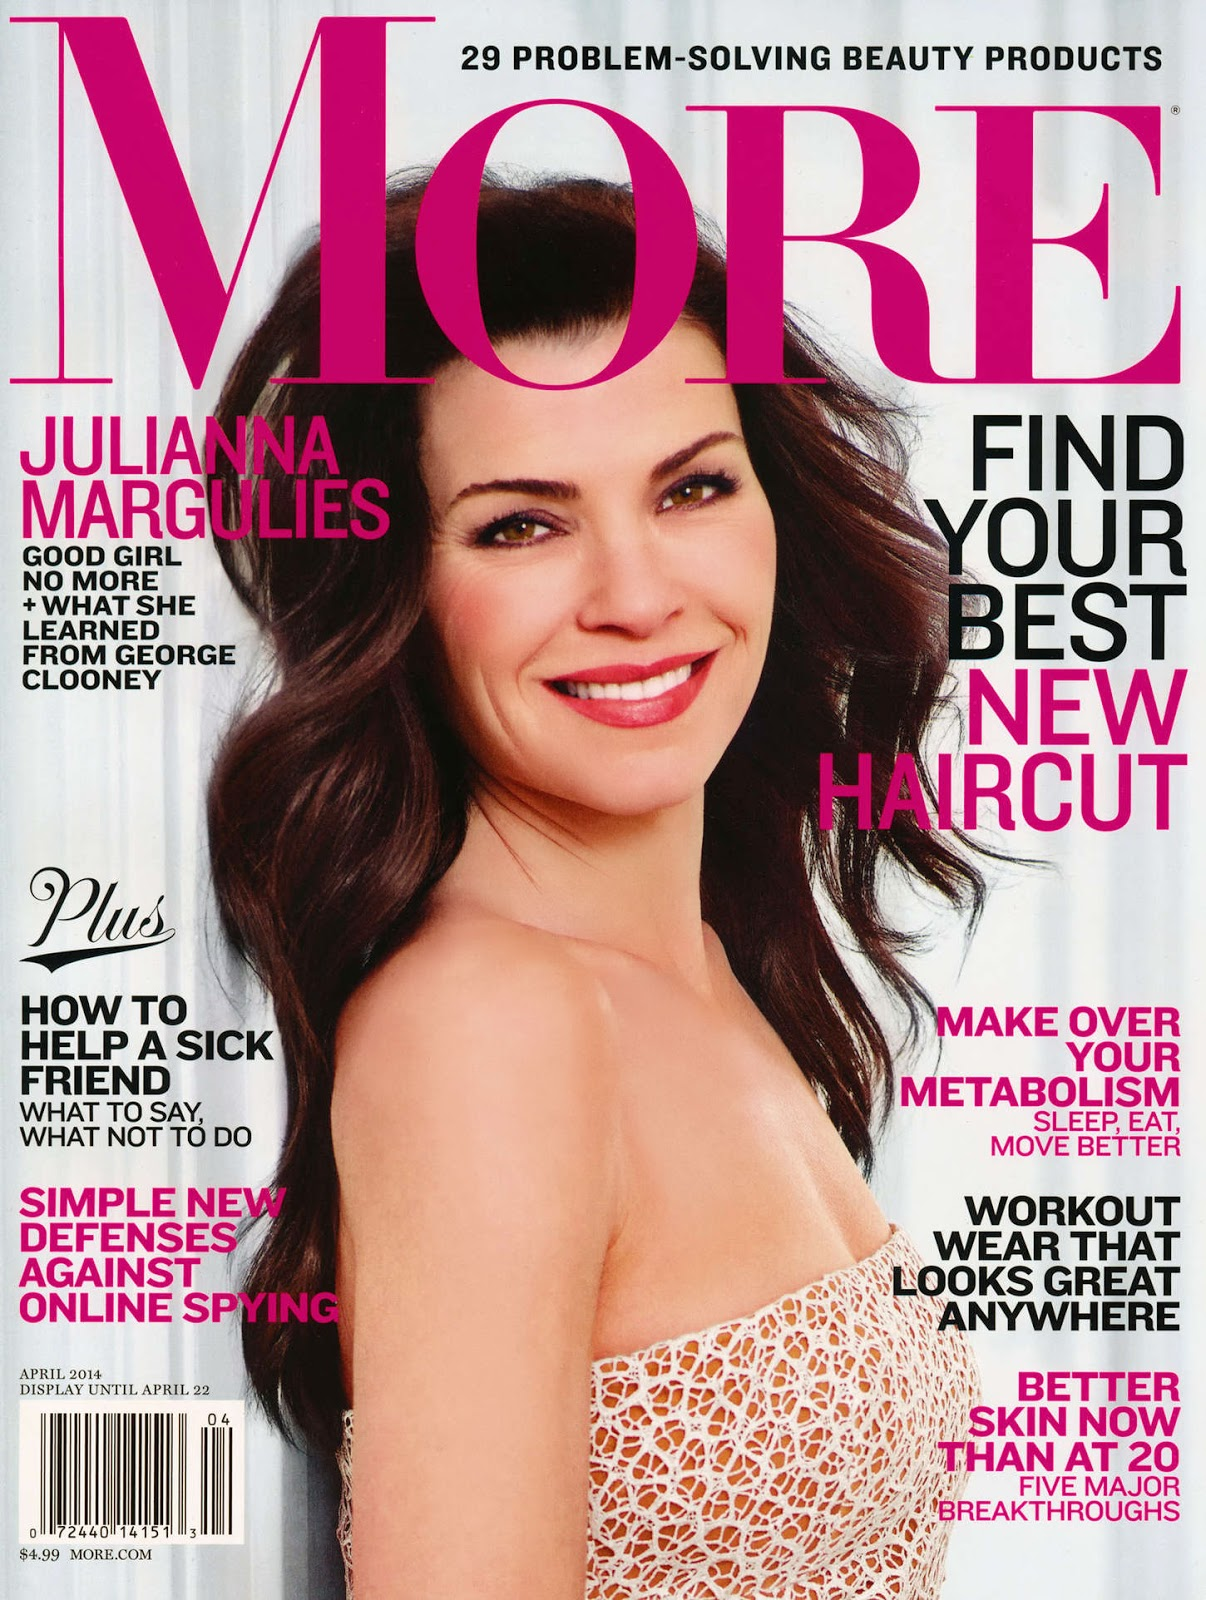 More Magazine November 2014 Issue: The Charmer Pages : Julianna Margulies For